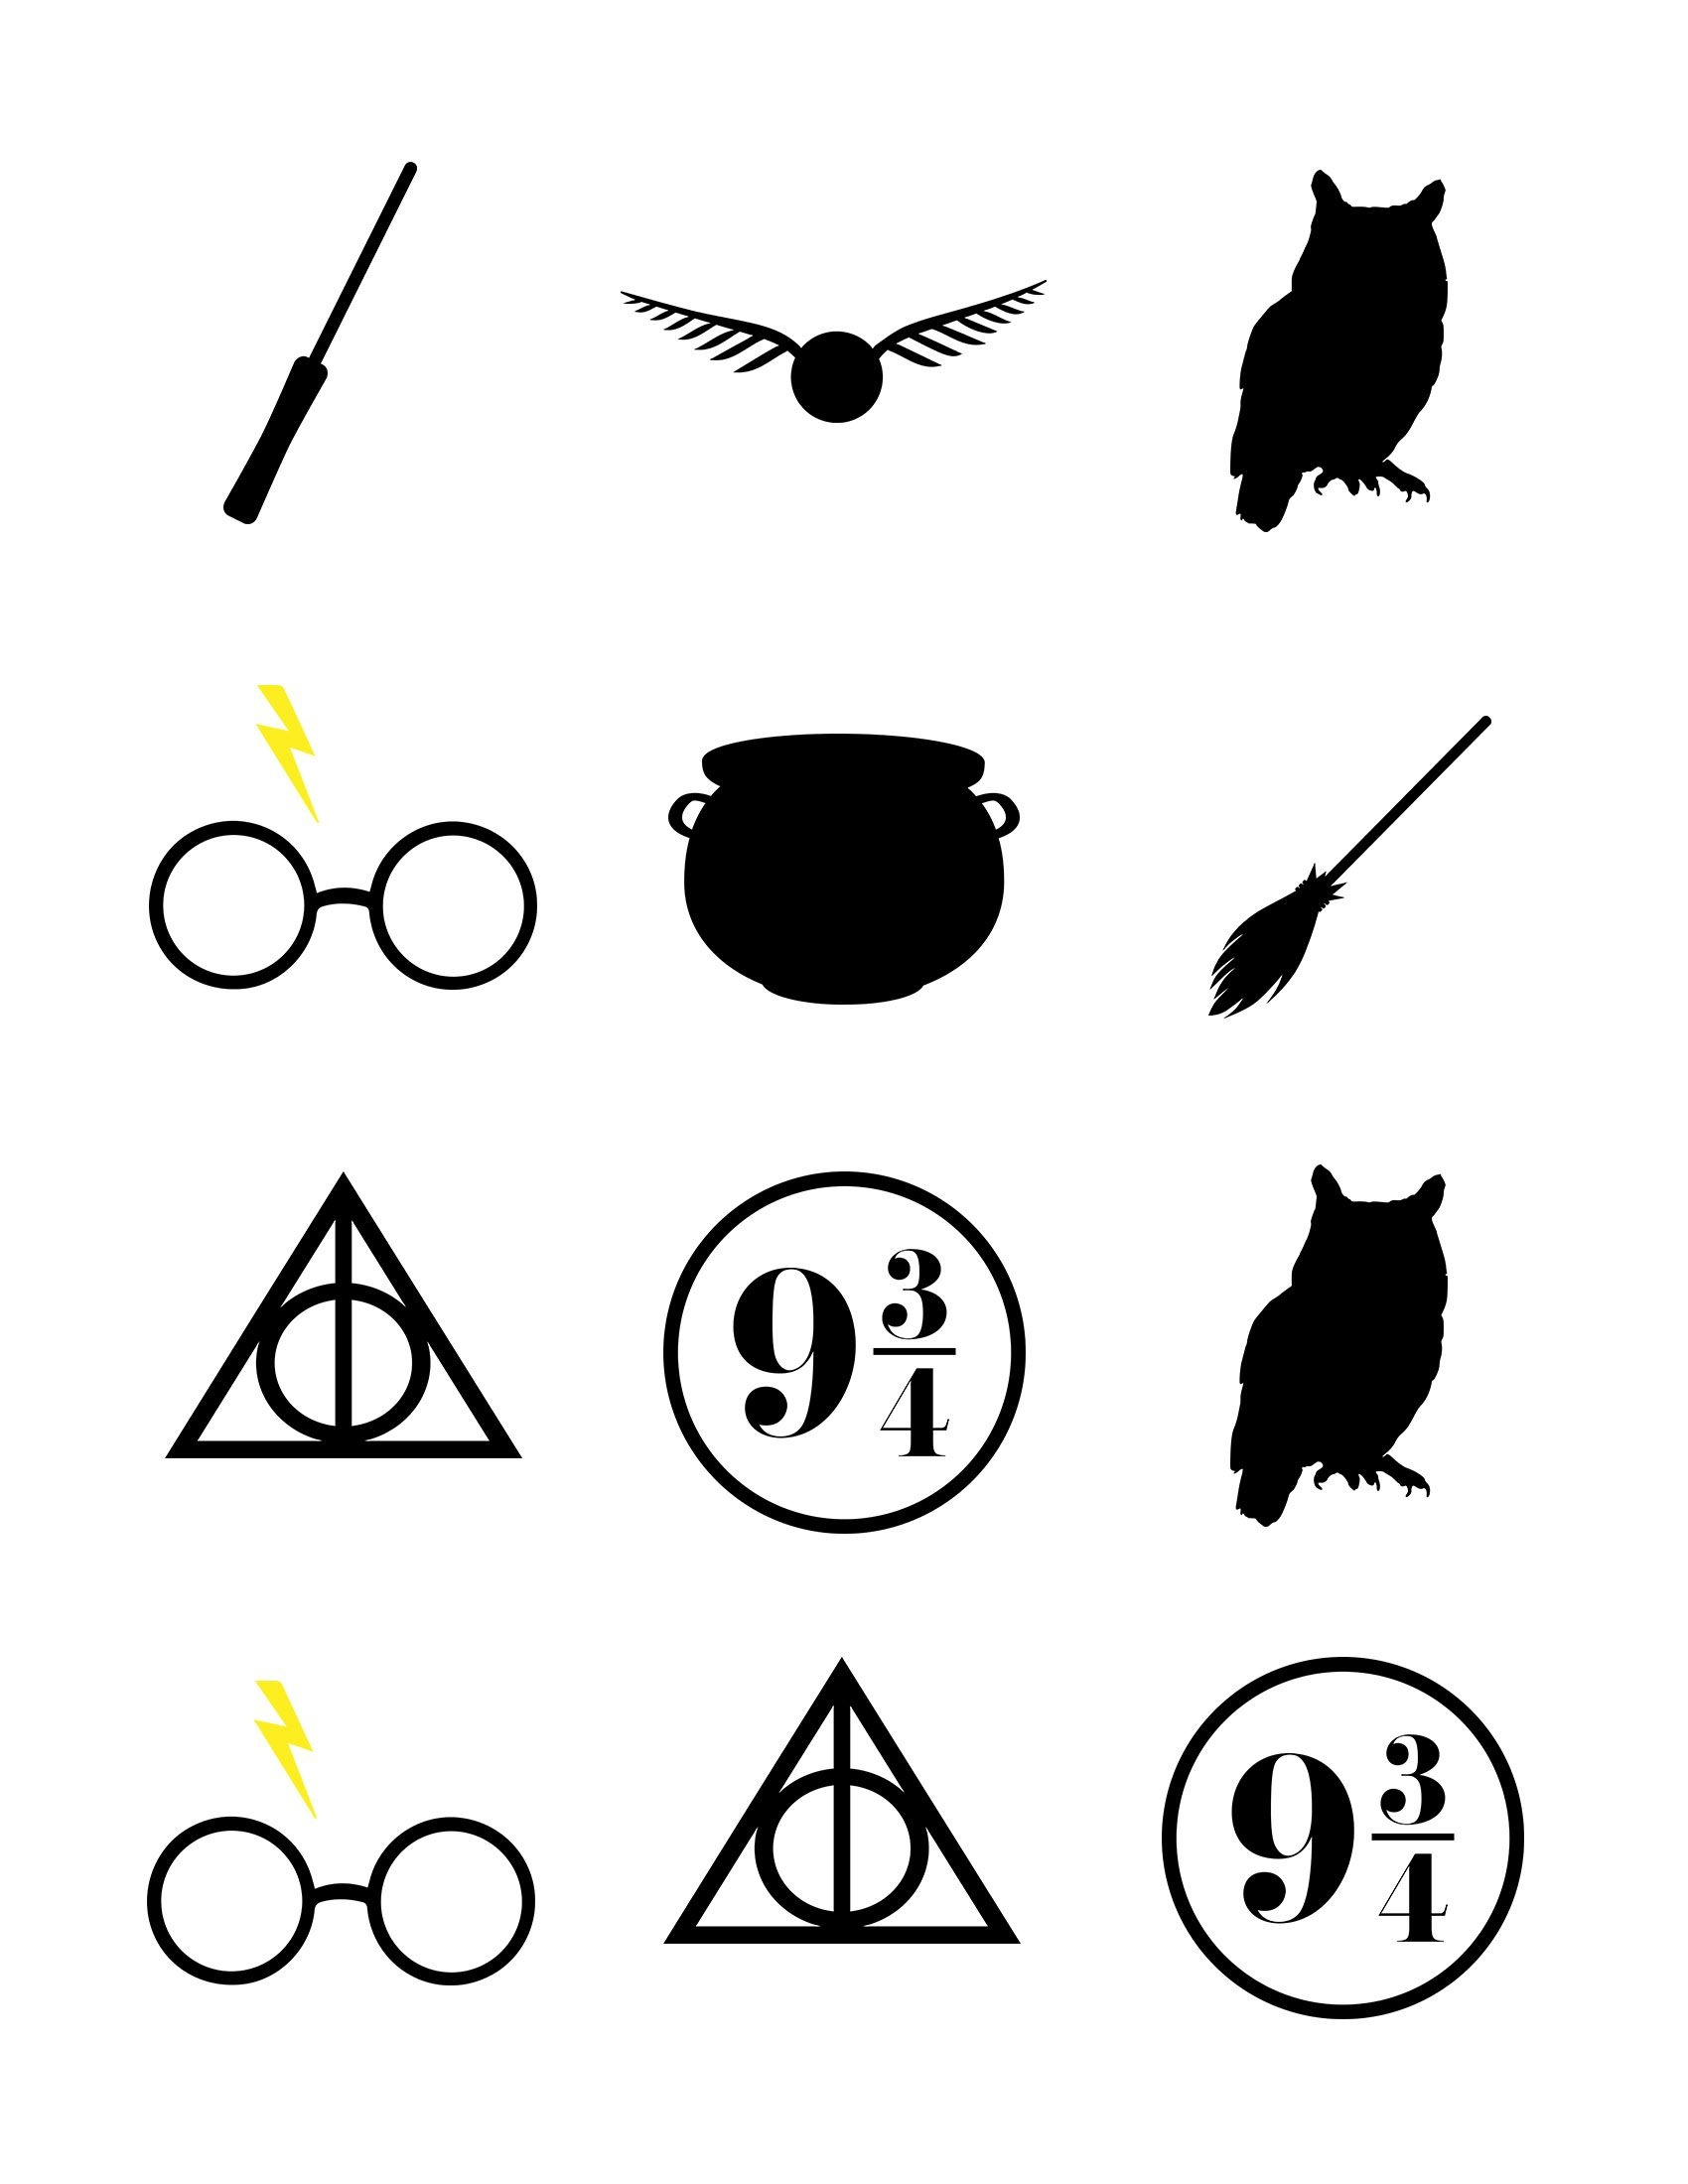 Harry Potter Baby Shower | Harry Potter Stuff | Harry Potter Baby - Free Printable Harry Potter Clip Art